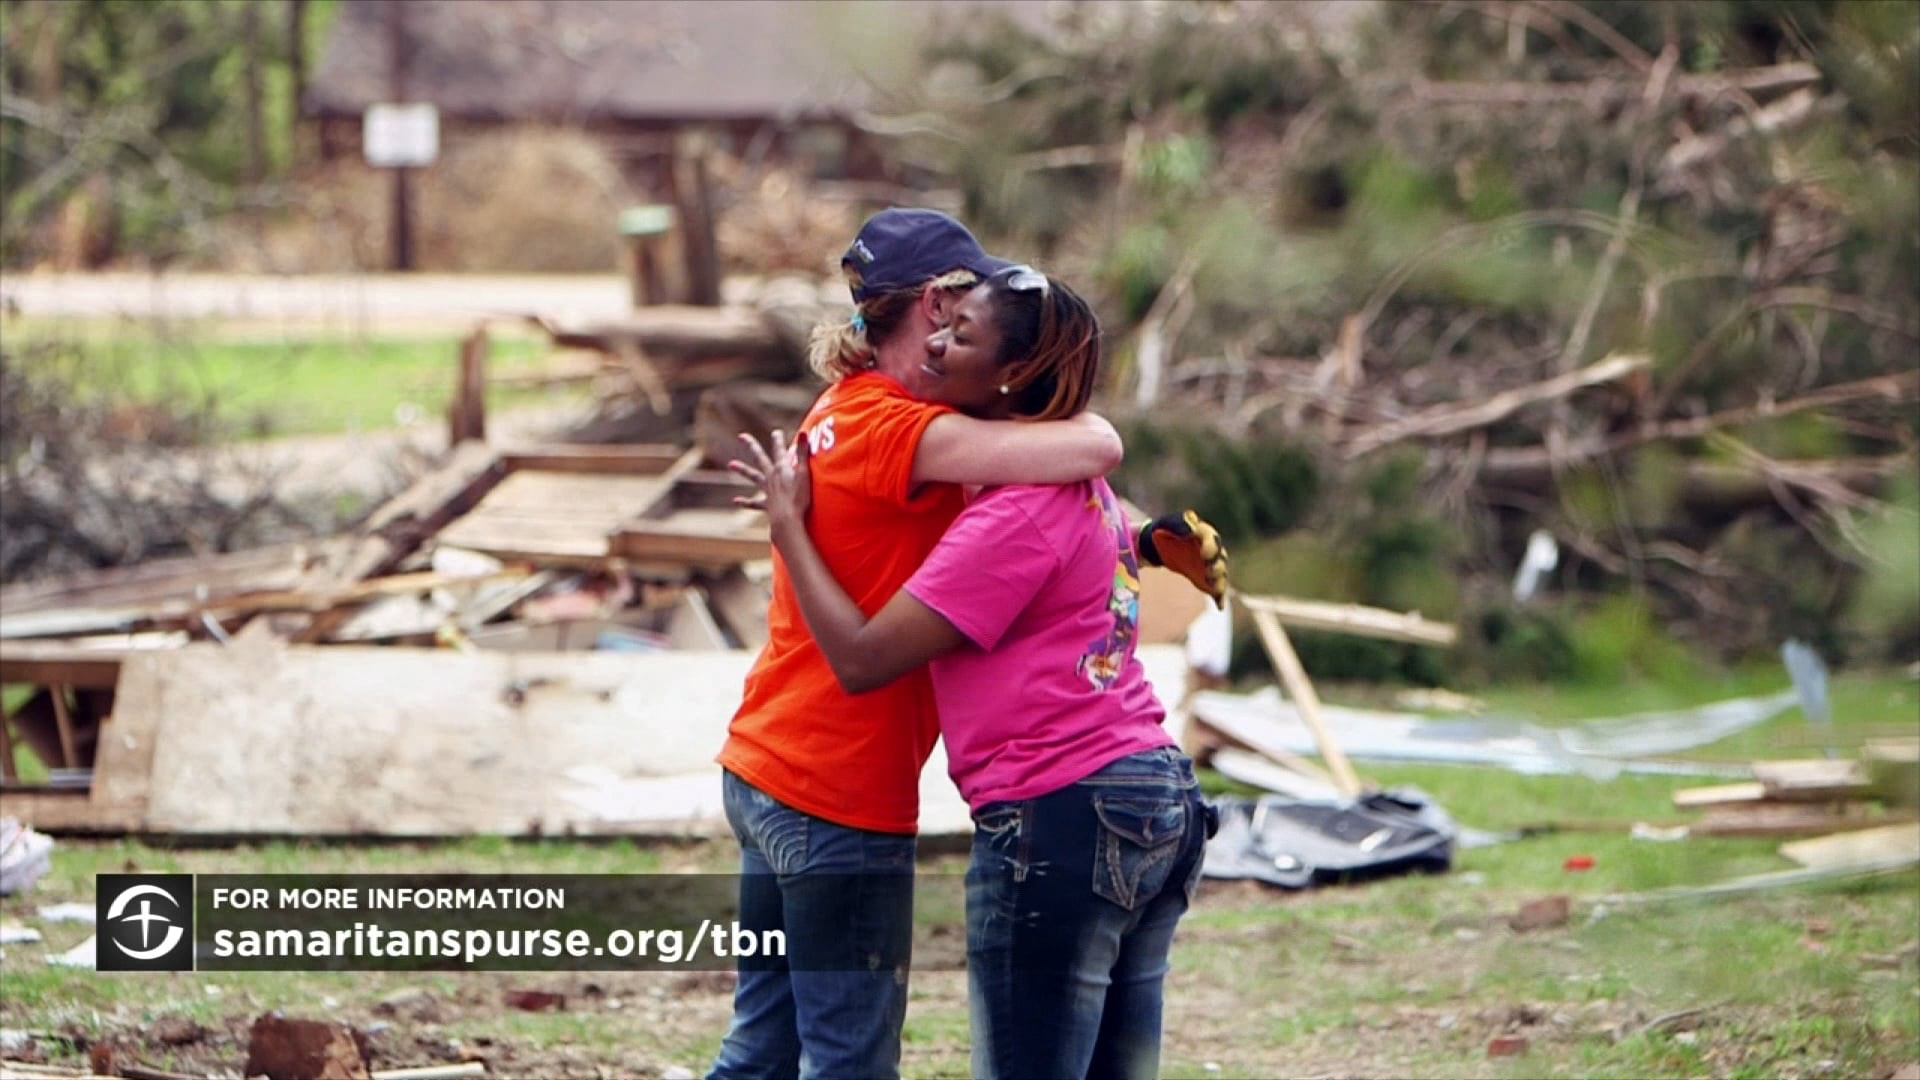 Watch Samaritan's Purse - Love Your Neighbor